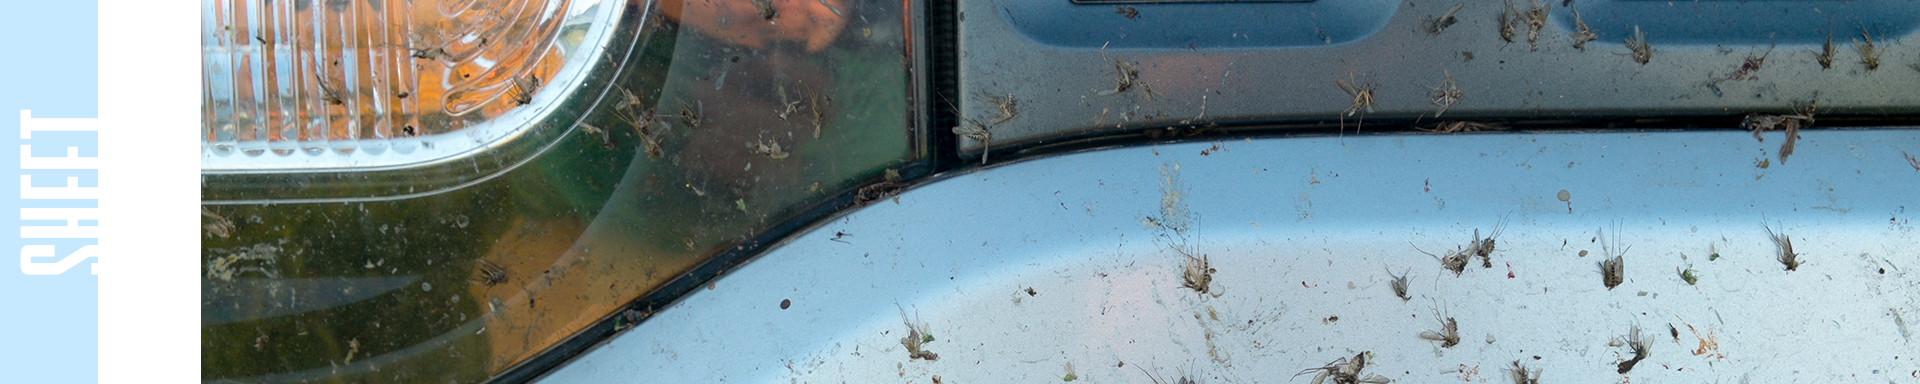 bugs on car with sheet